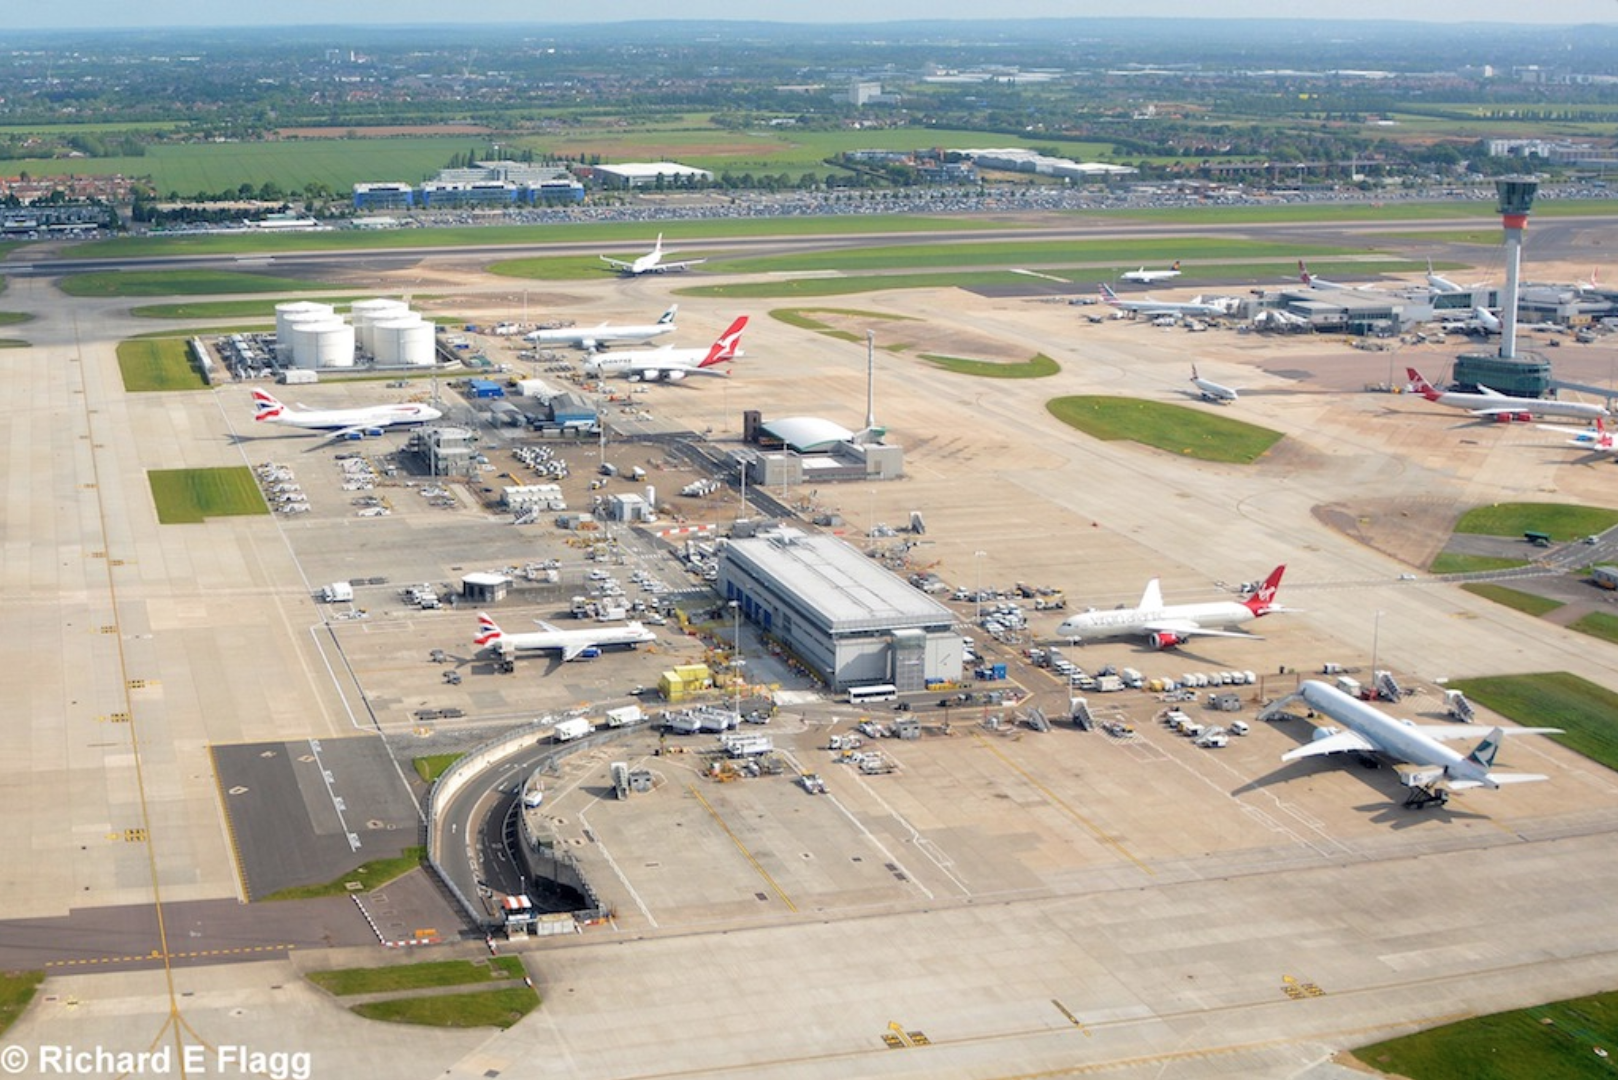 013Aerial View of Heathrow Airport 2 - 22 May 2016.png